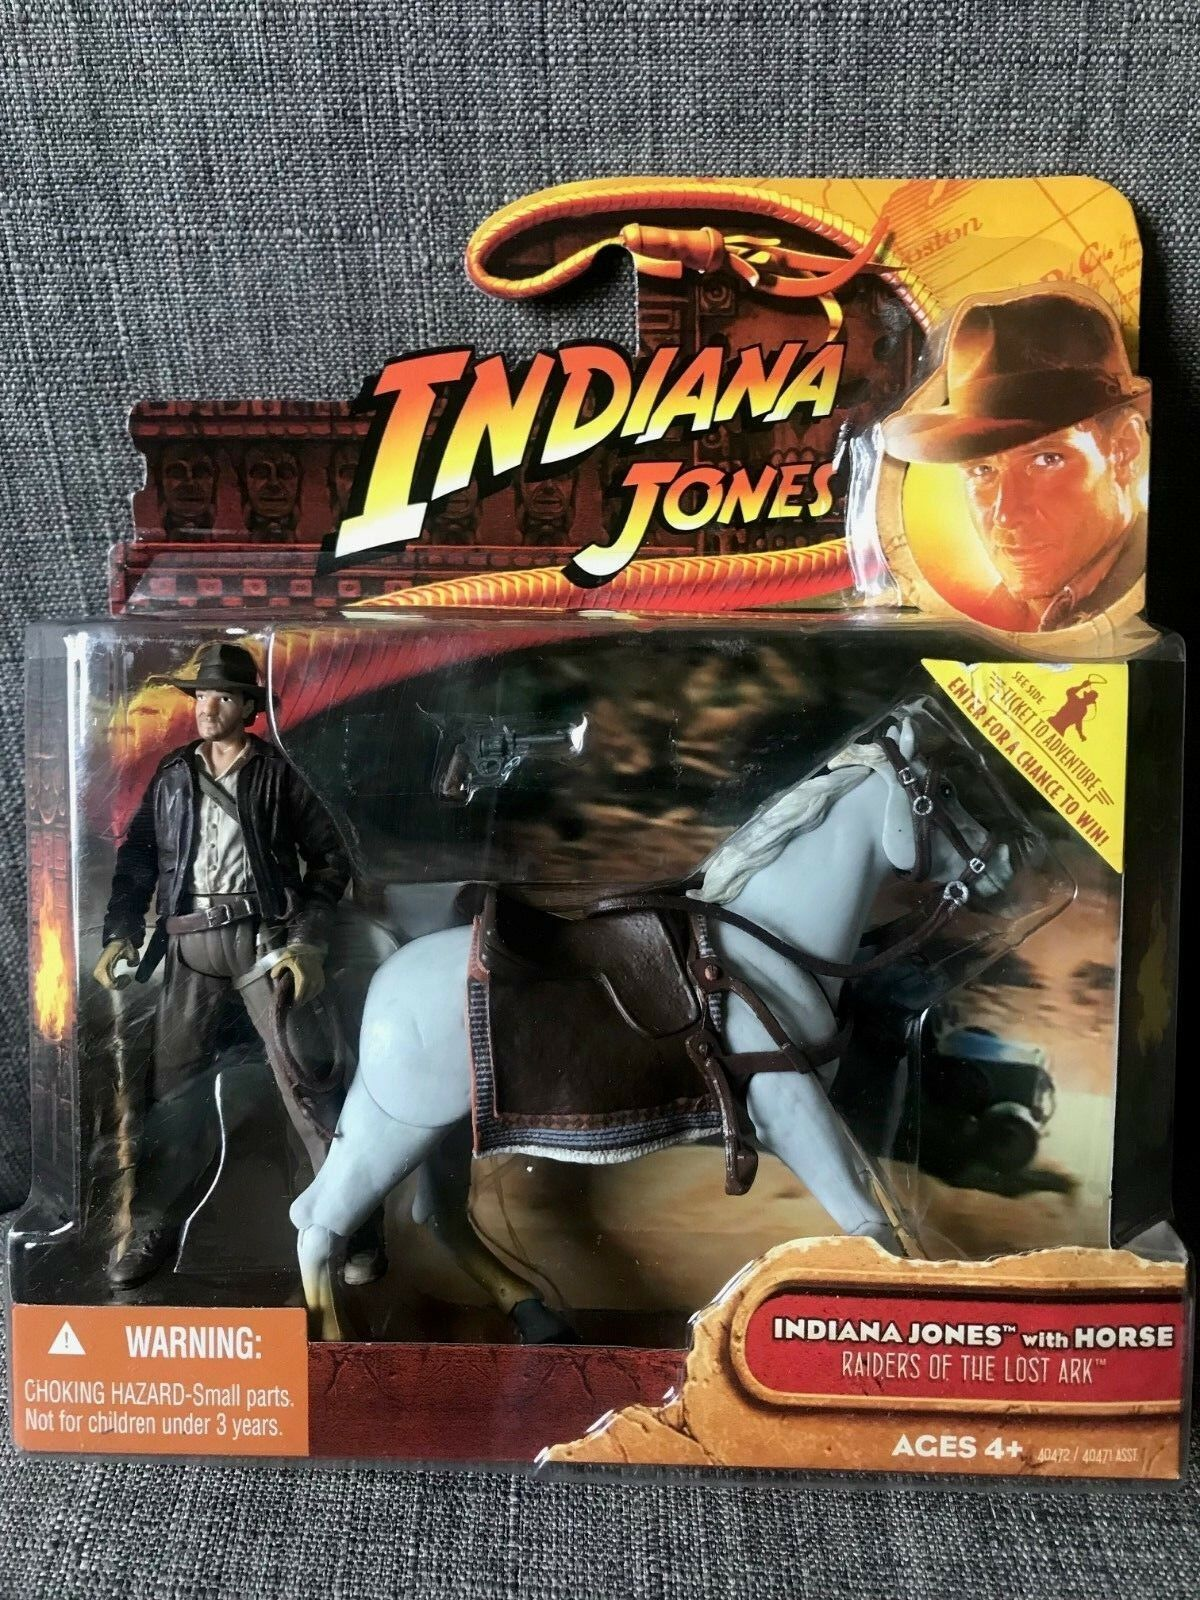 Indiana Jones with Horse Raiders of the Lost Ark 2008 New   Sealed Box